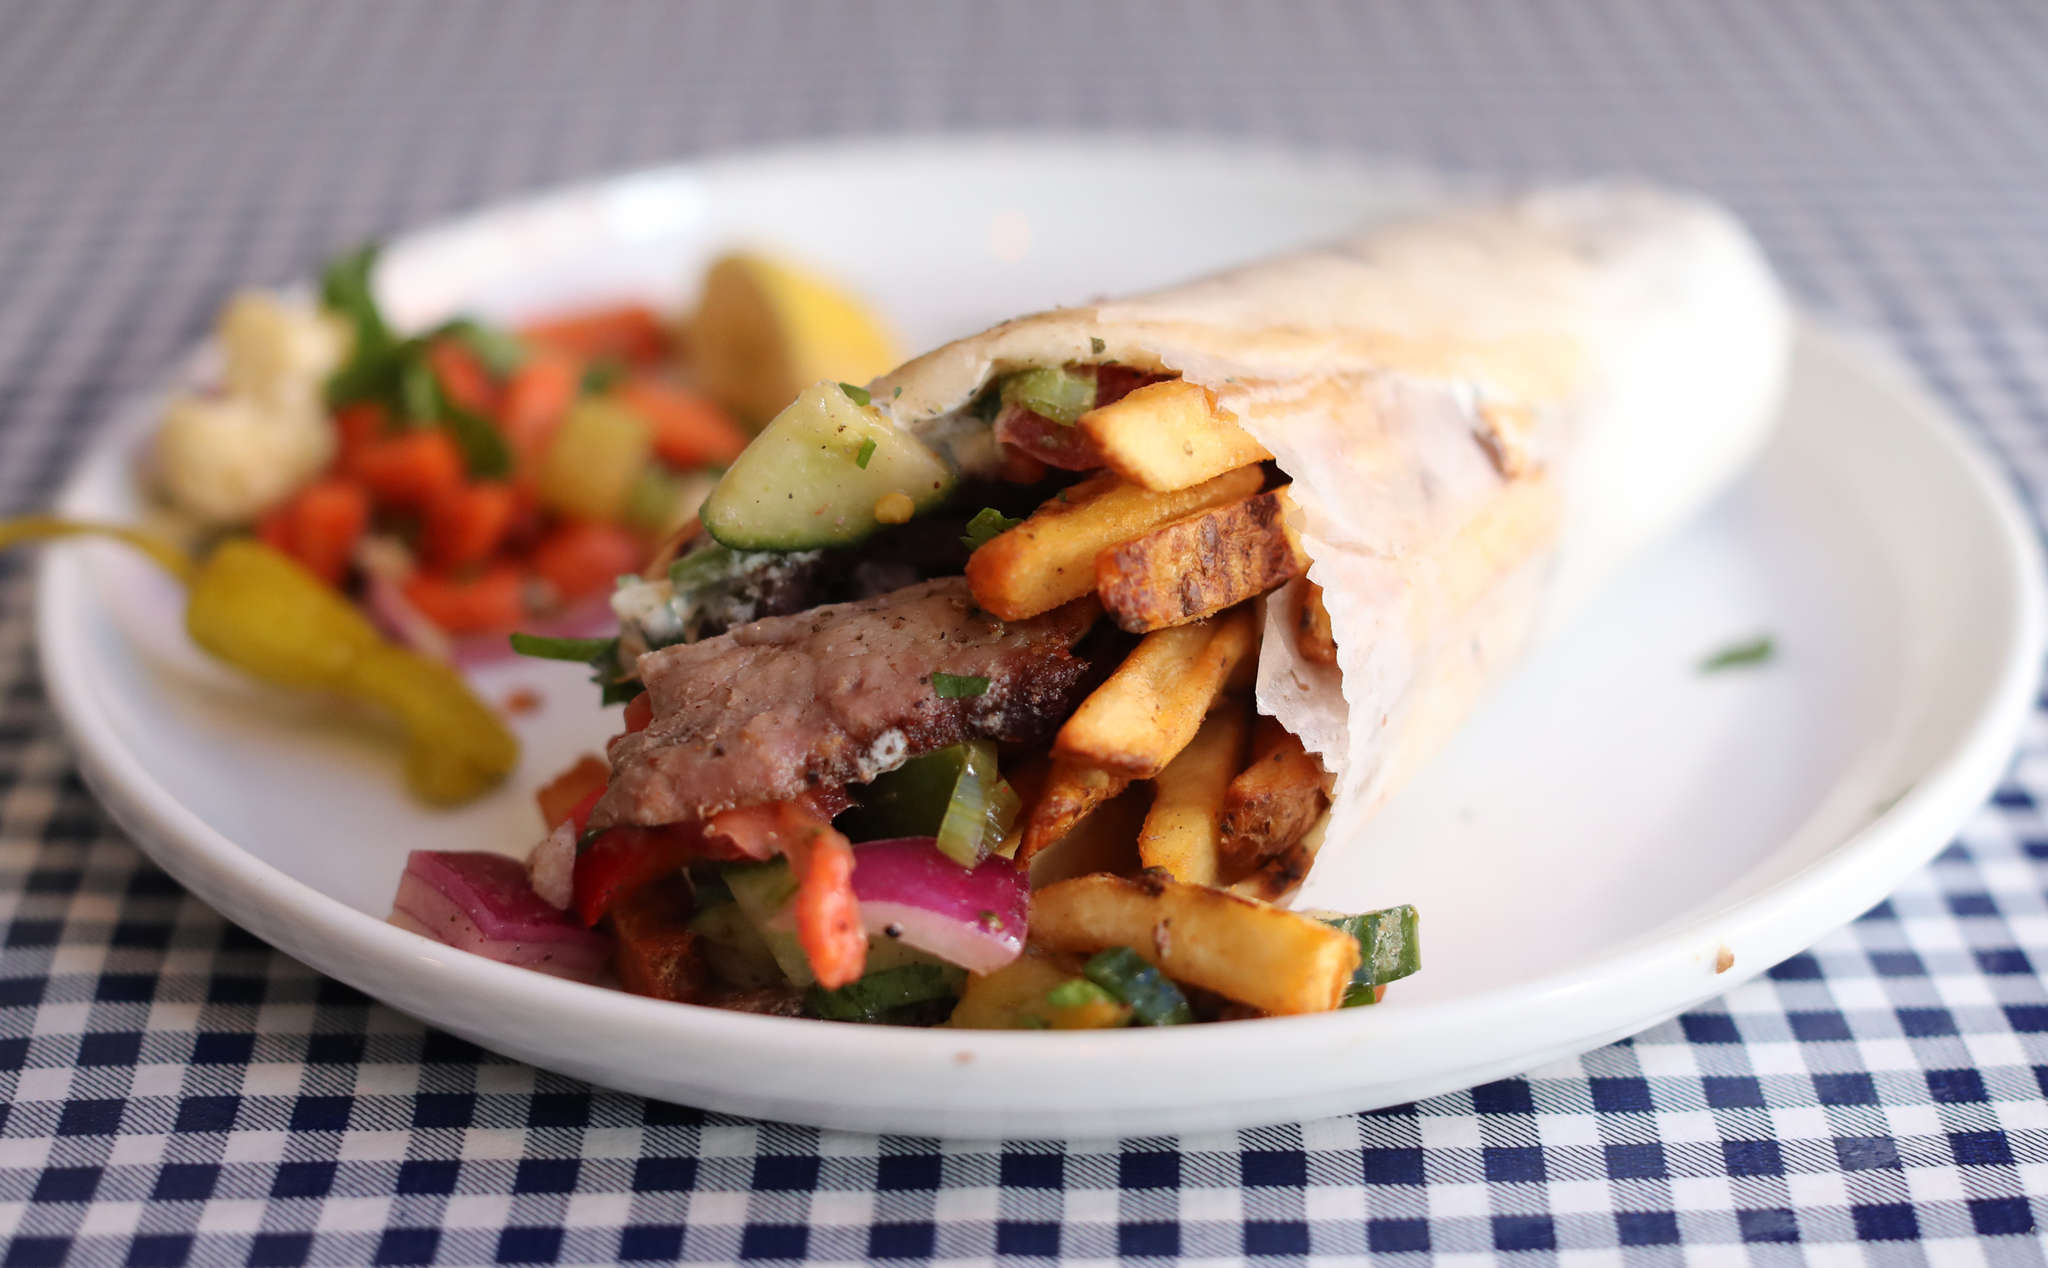 The gyro at Kanella Grill incorporates layers of flavor.